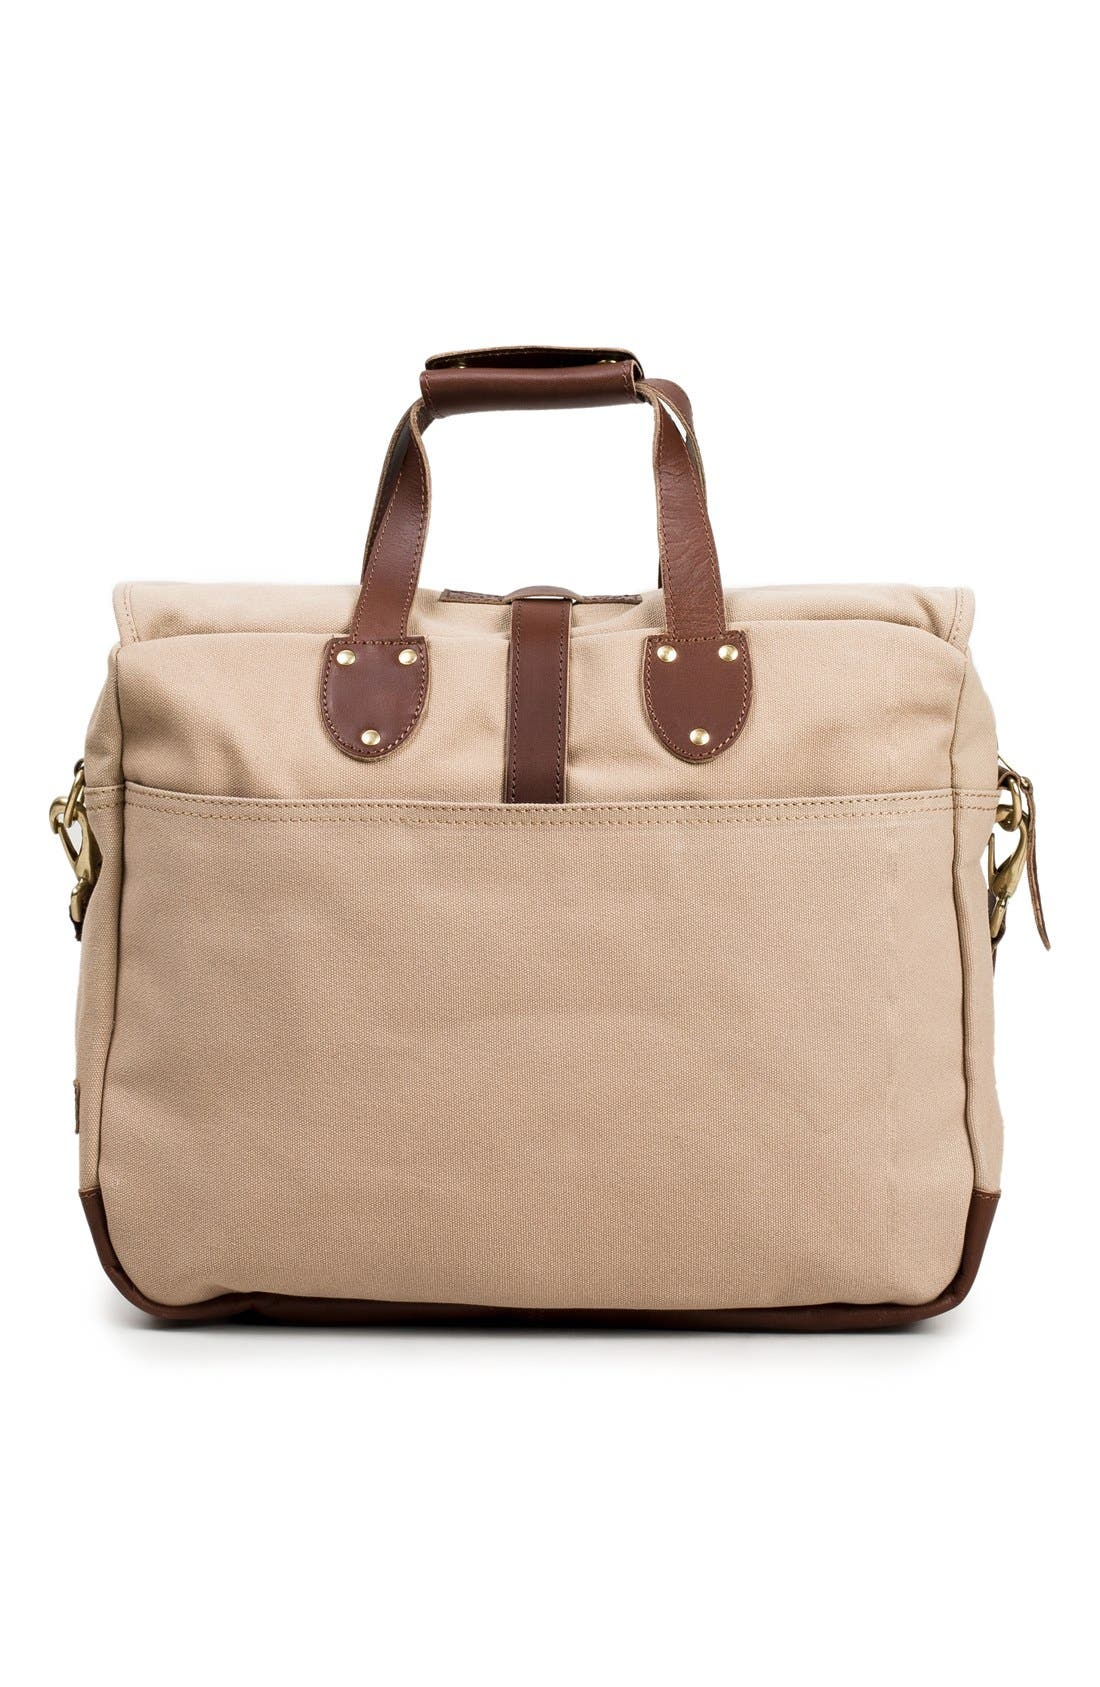 'Lakeland' Laptop Bag,                             Alternate thumbnail 3, color,                             TAN